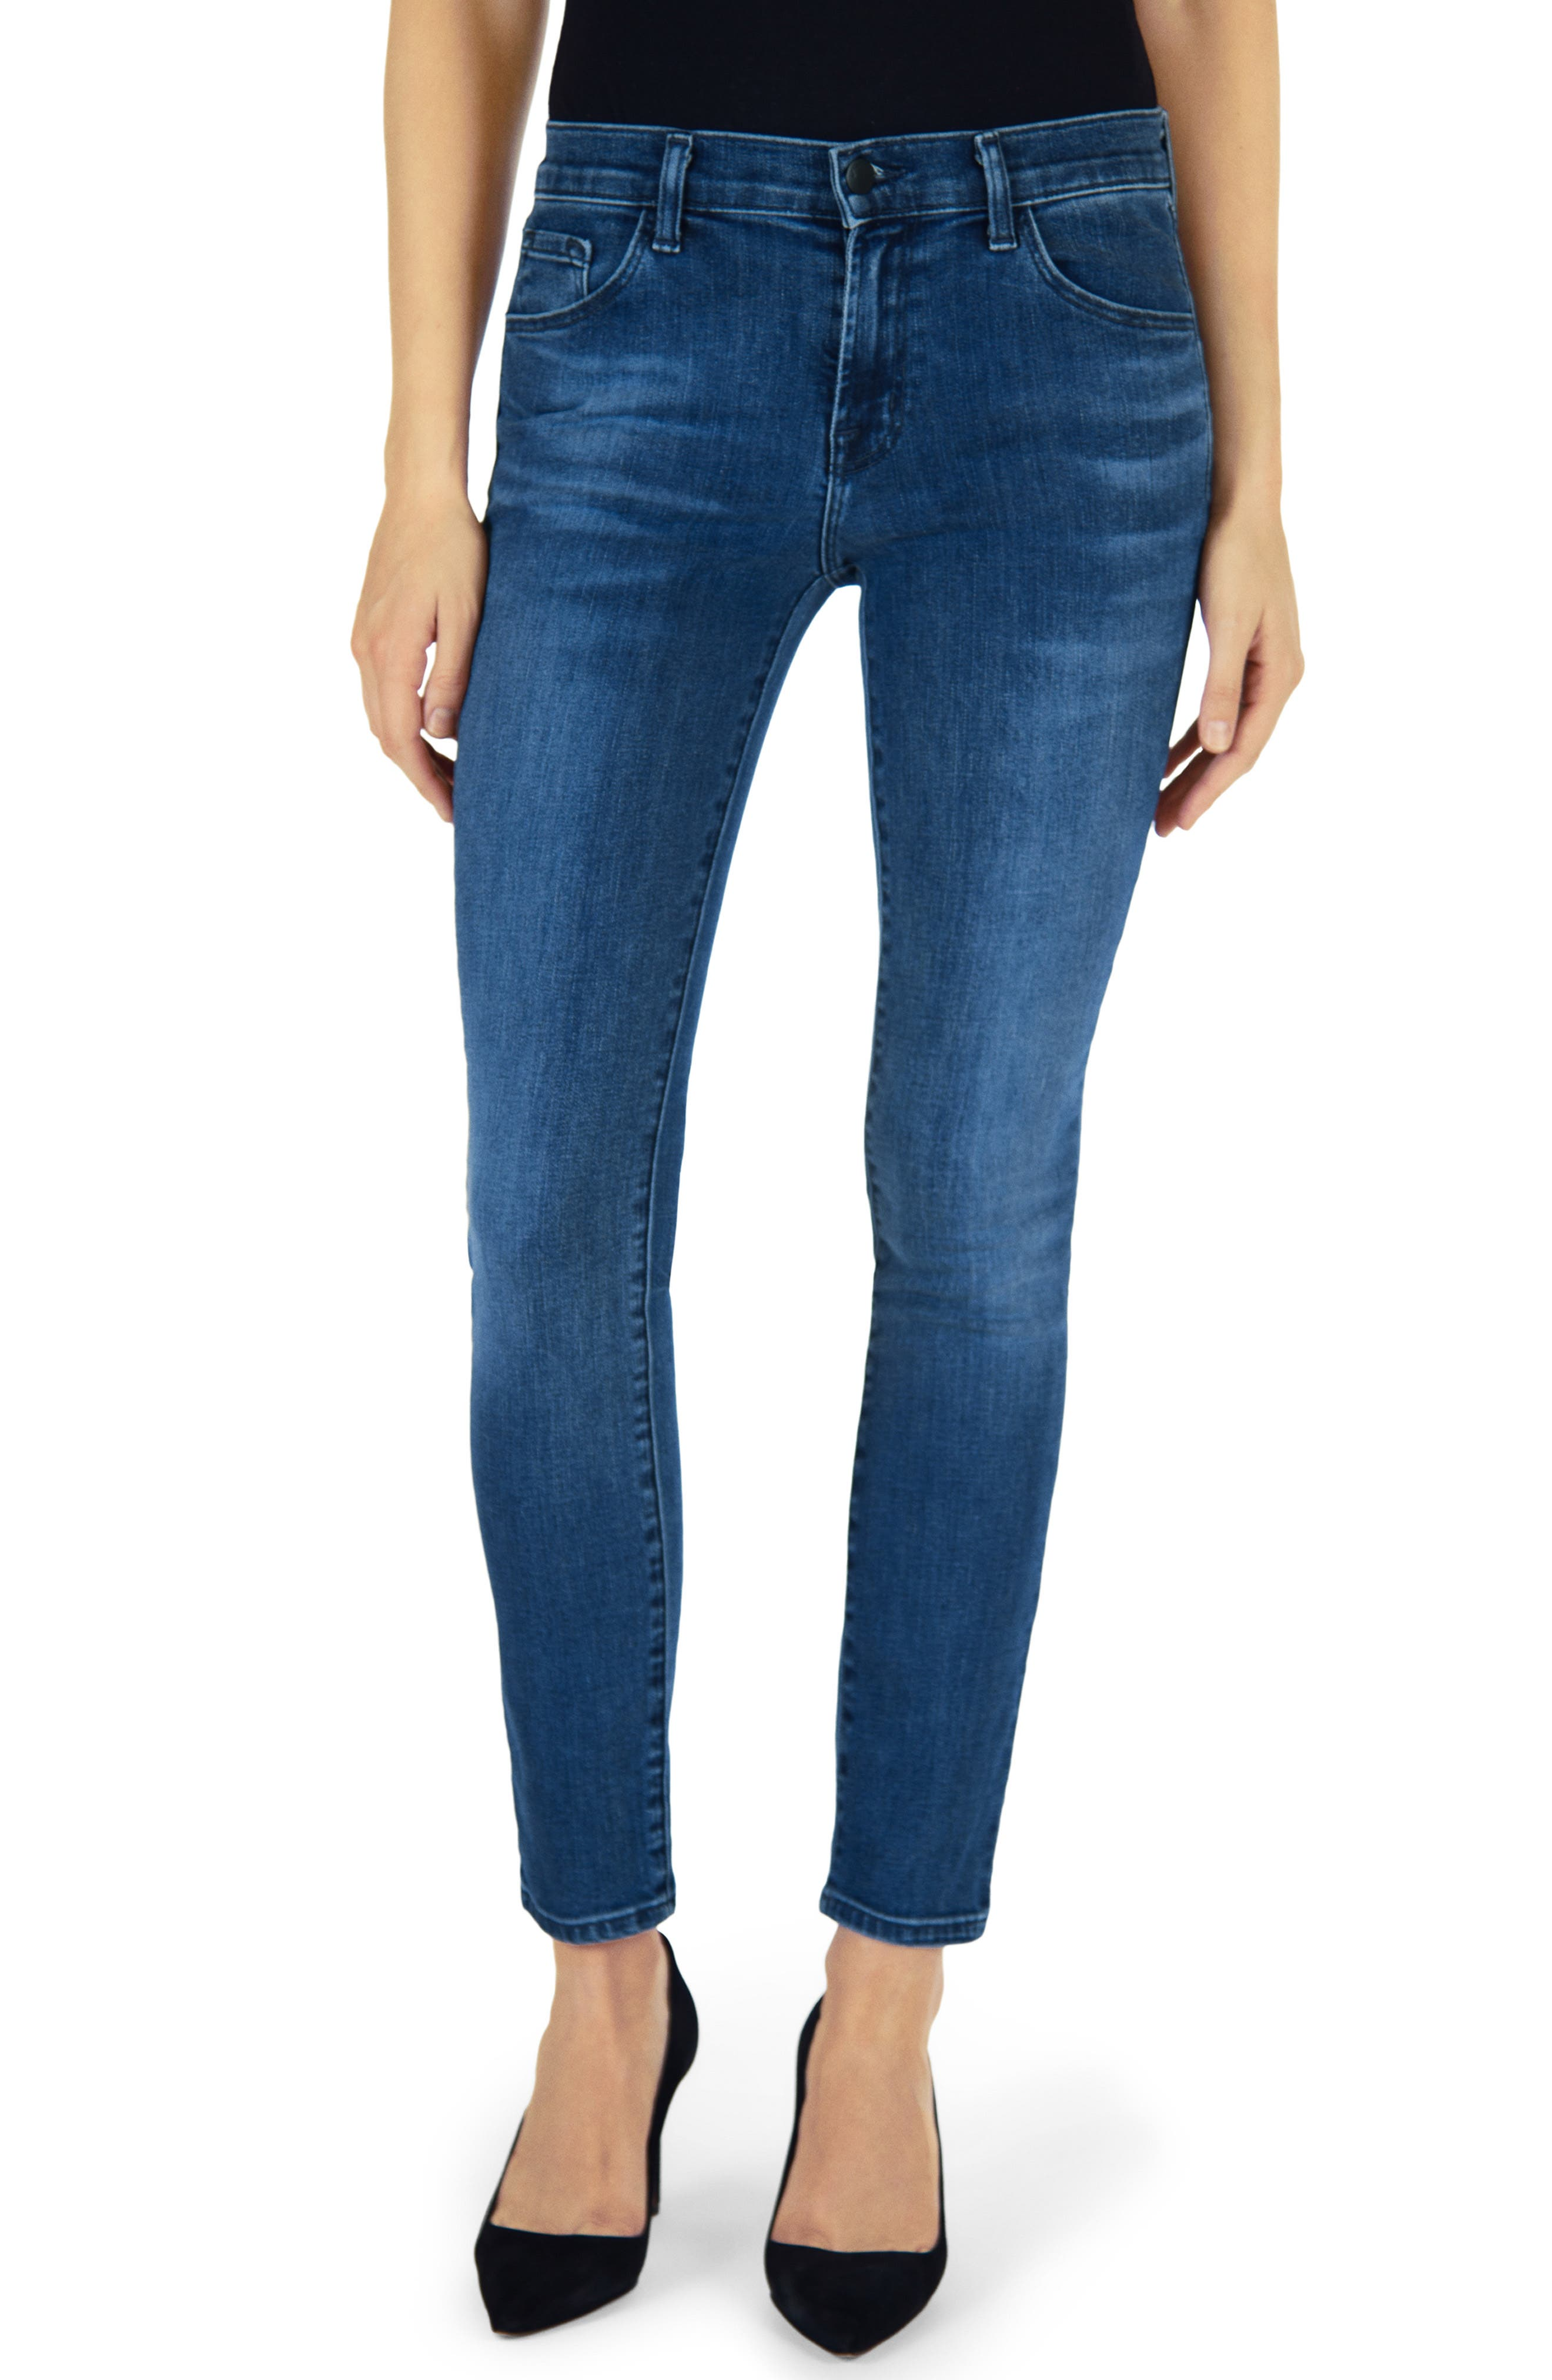 811 Skinny Jeans,                         Main,                         color, Fuse